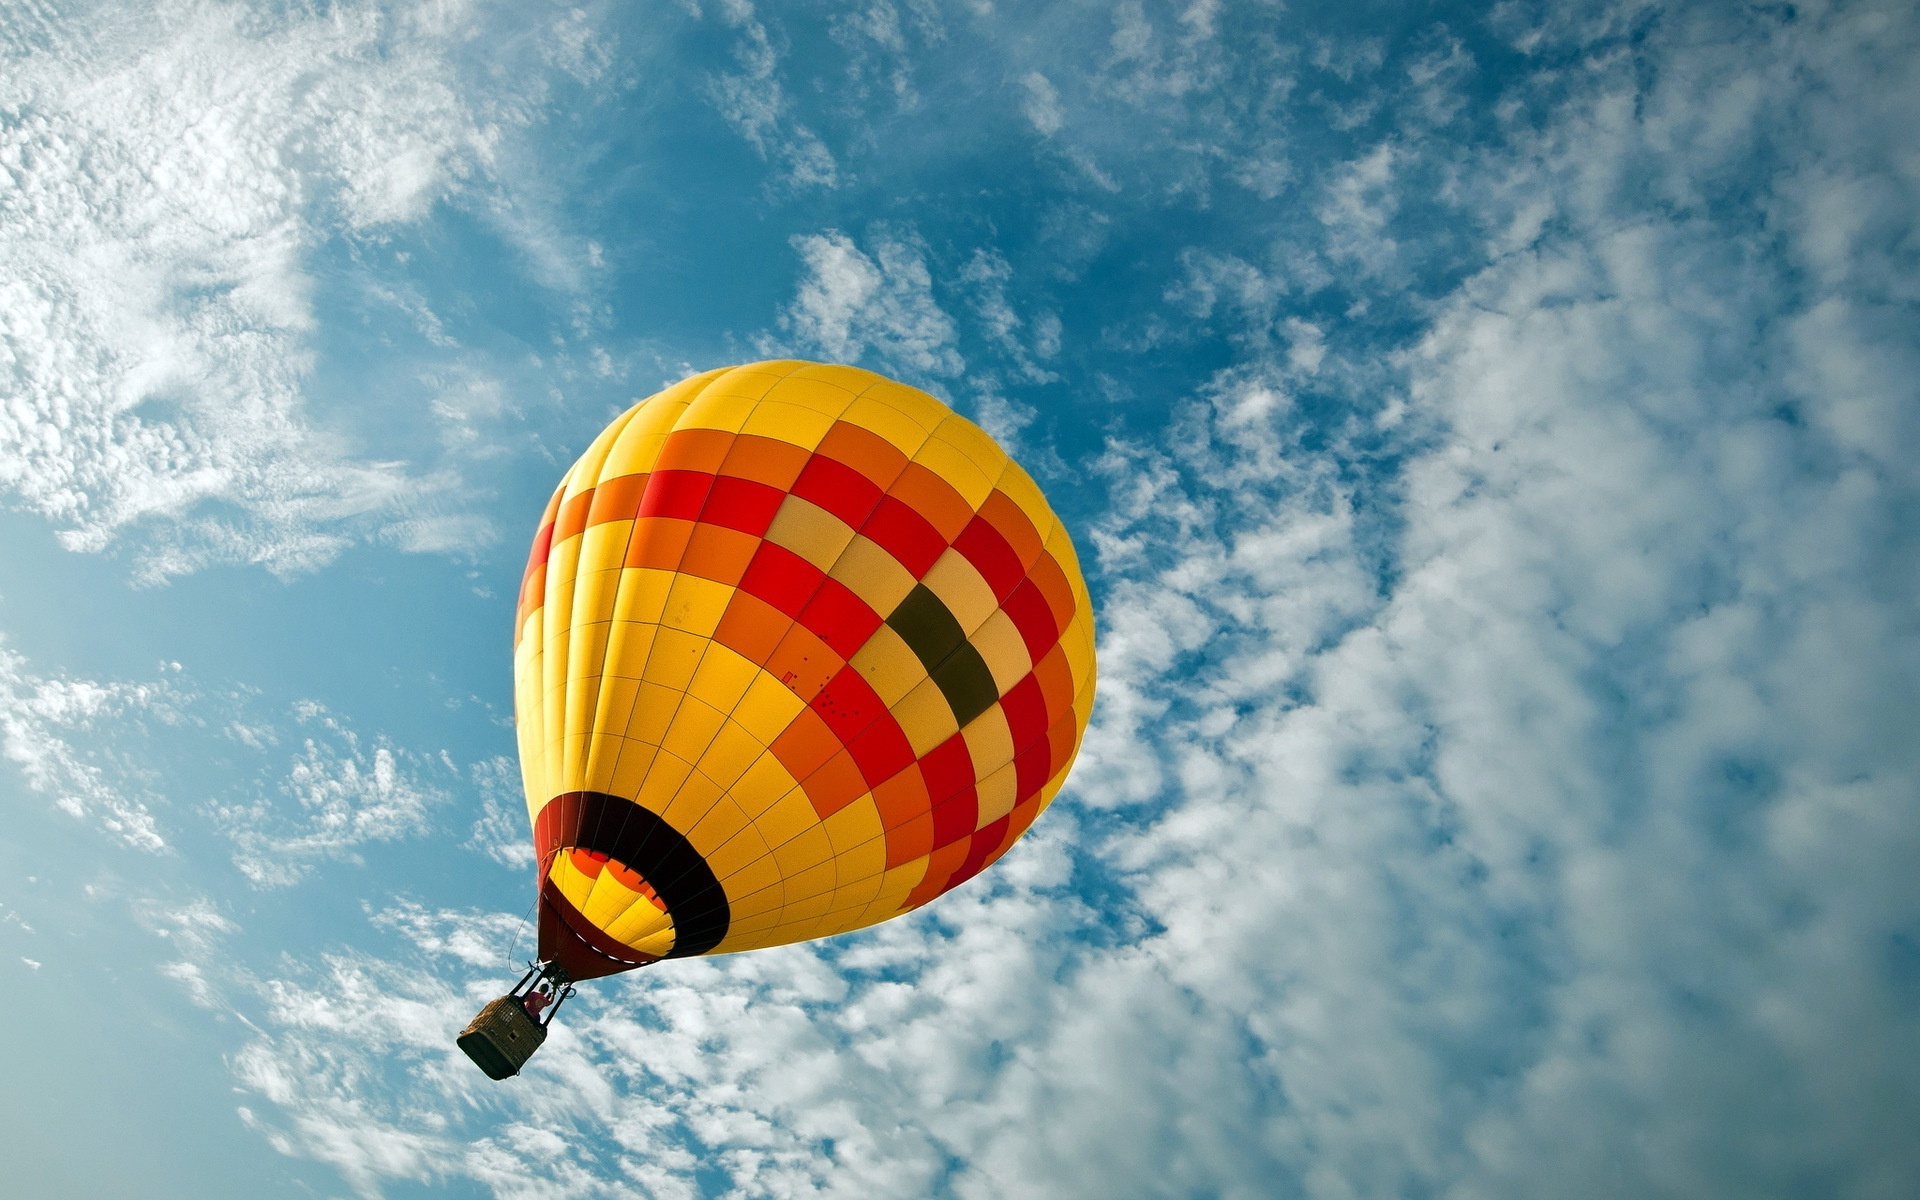 Hot Air Balloon Hd Wallpaper Hd Latest Wallpapers